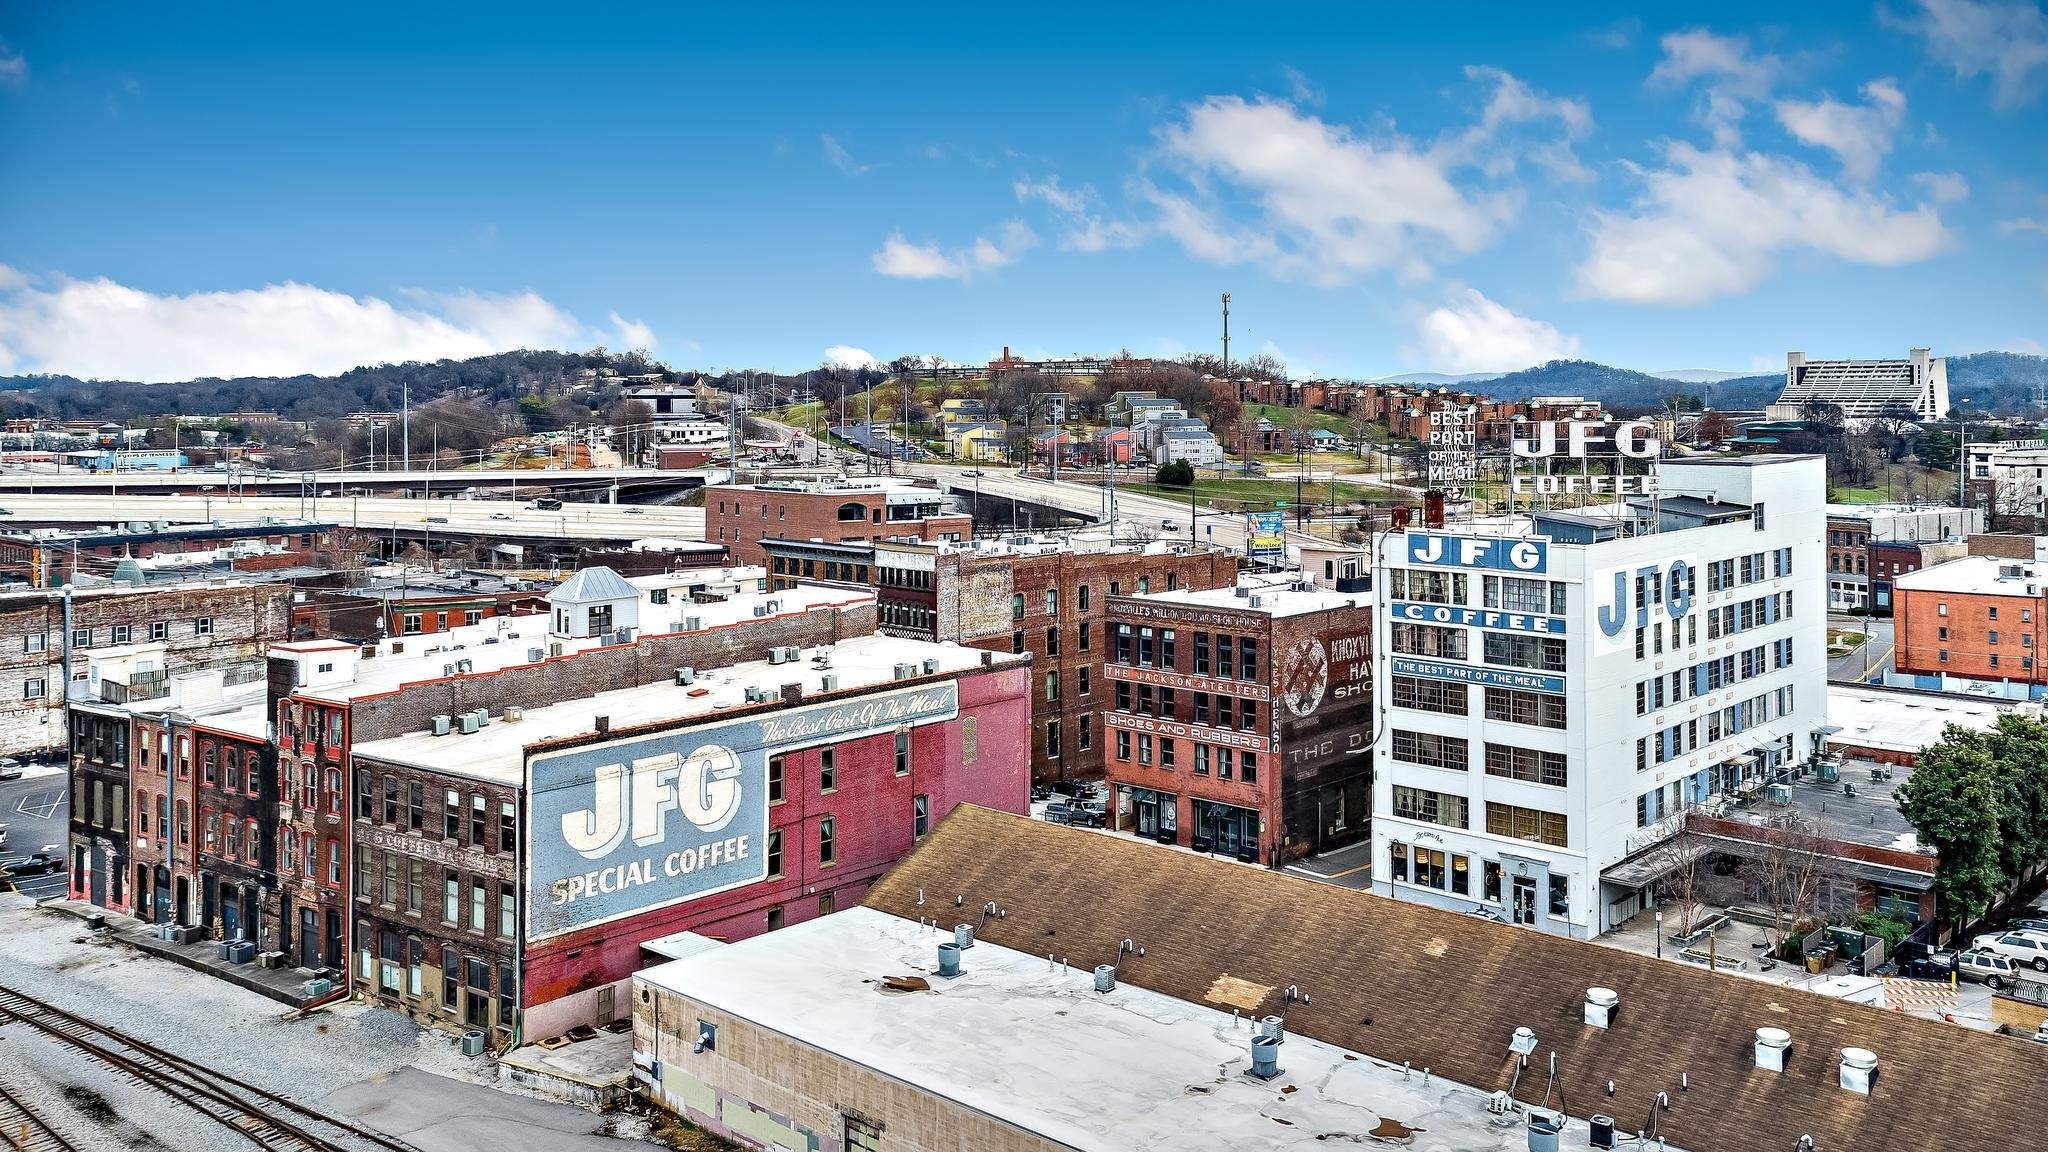 009 knoxville aerial photography.jpg